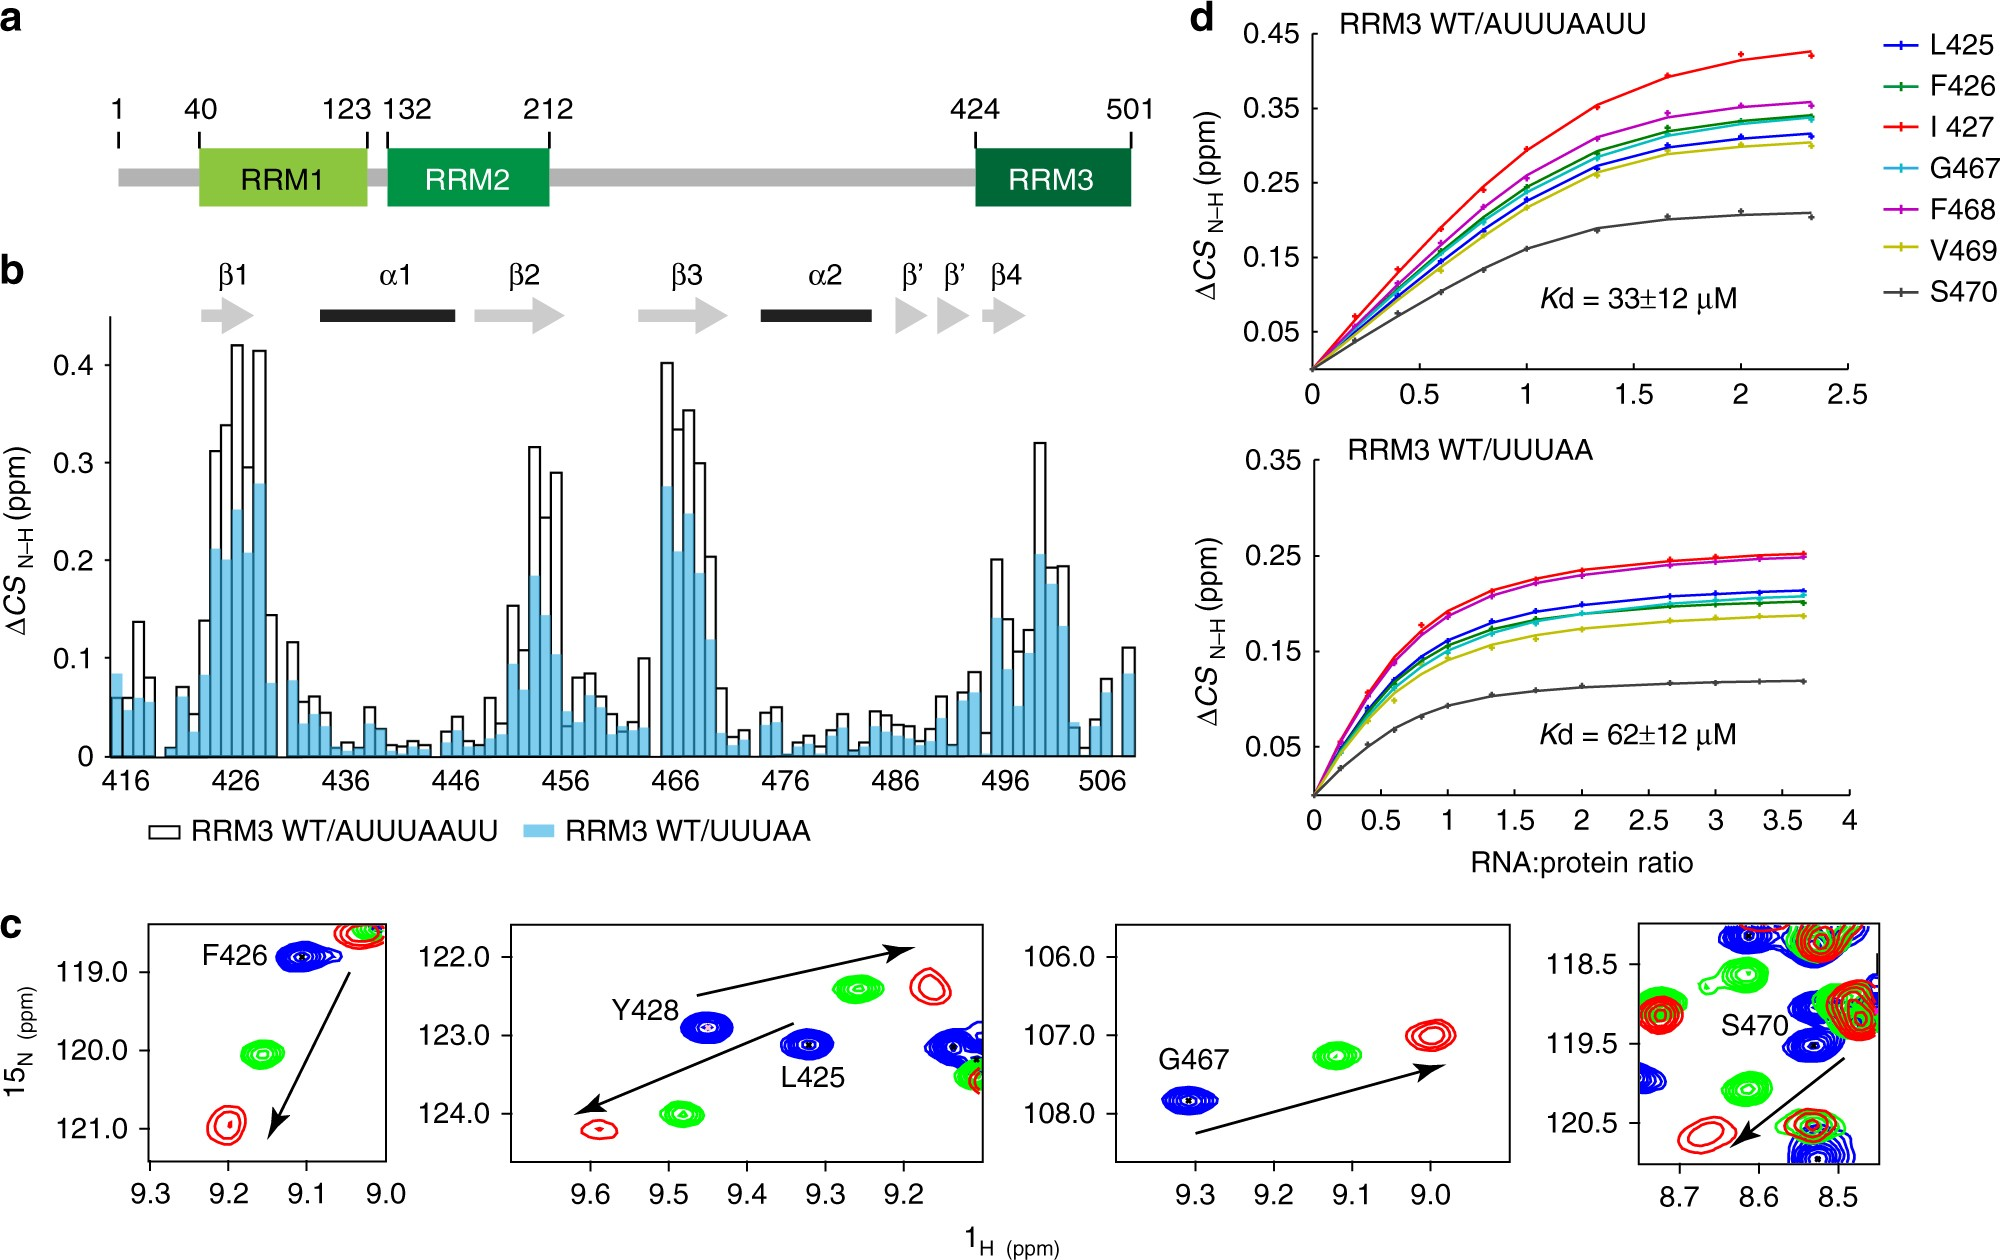 Aromatic Side Chain Conformational Switch On The Surface Of Rna Previously A Oneway Contains Two Terminals When Recognition Motif Enables Discrimination Nature Communications